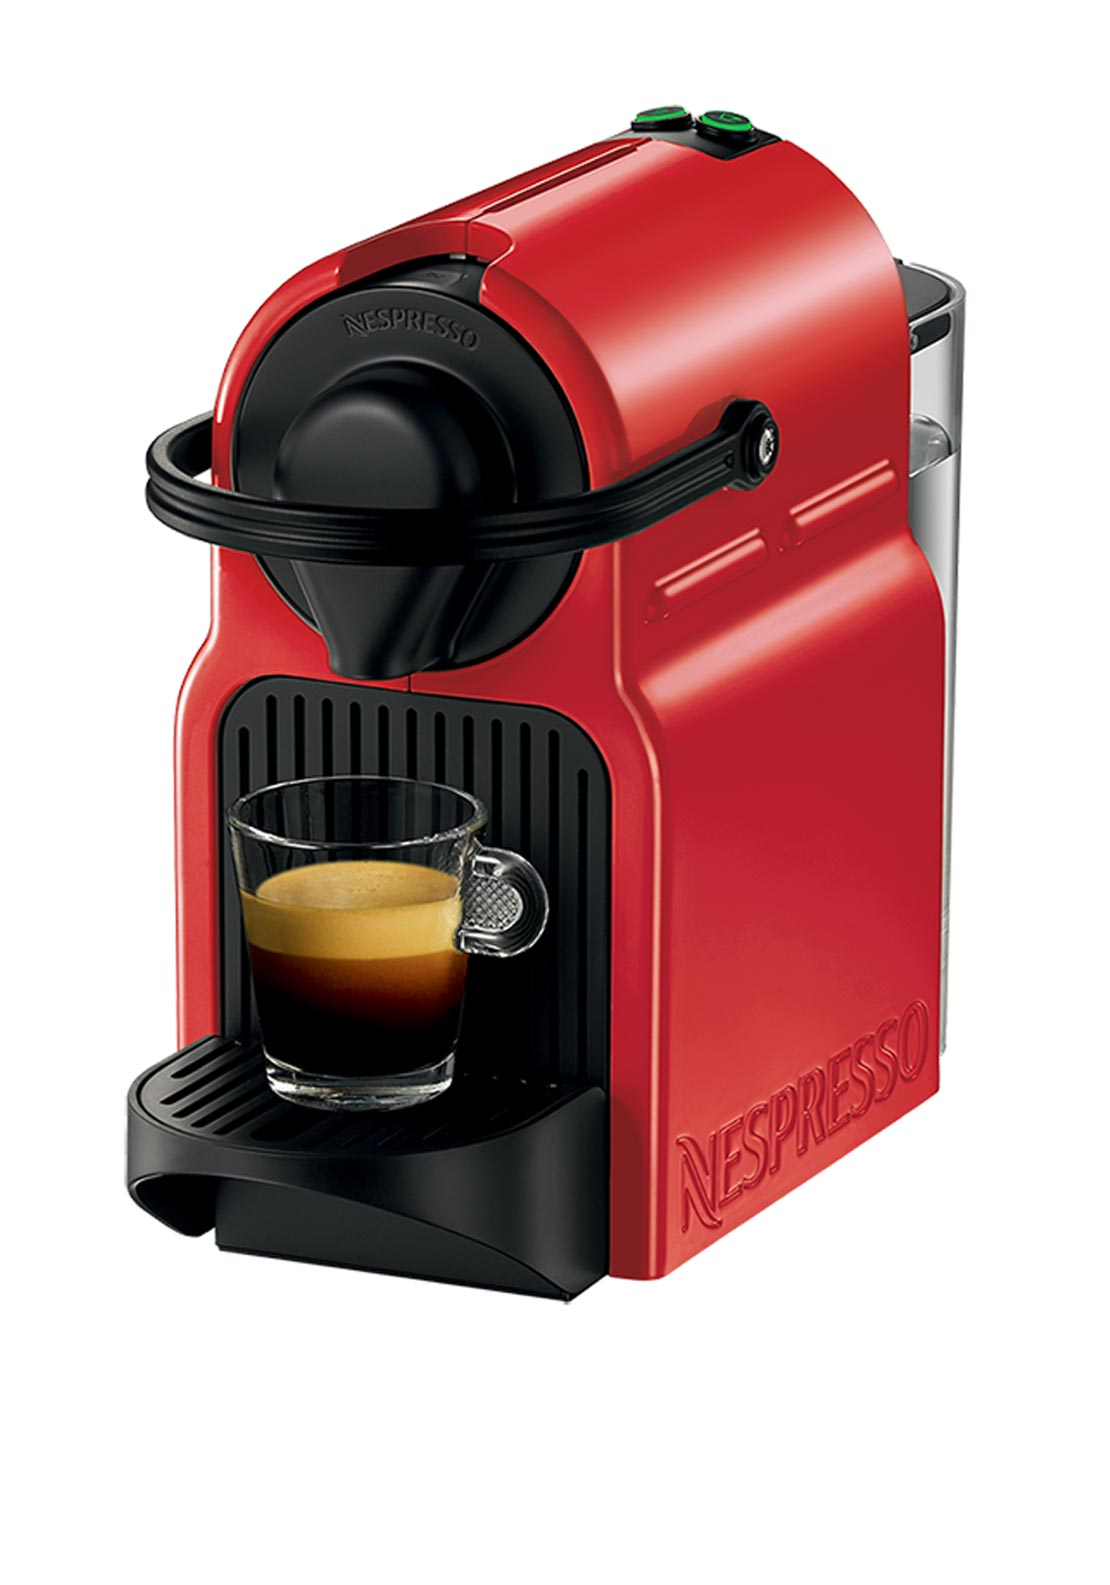 Nespresso Inissia Krups Coffee Machine, Red